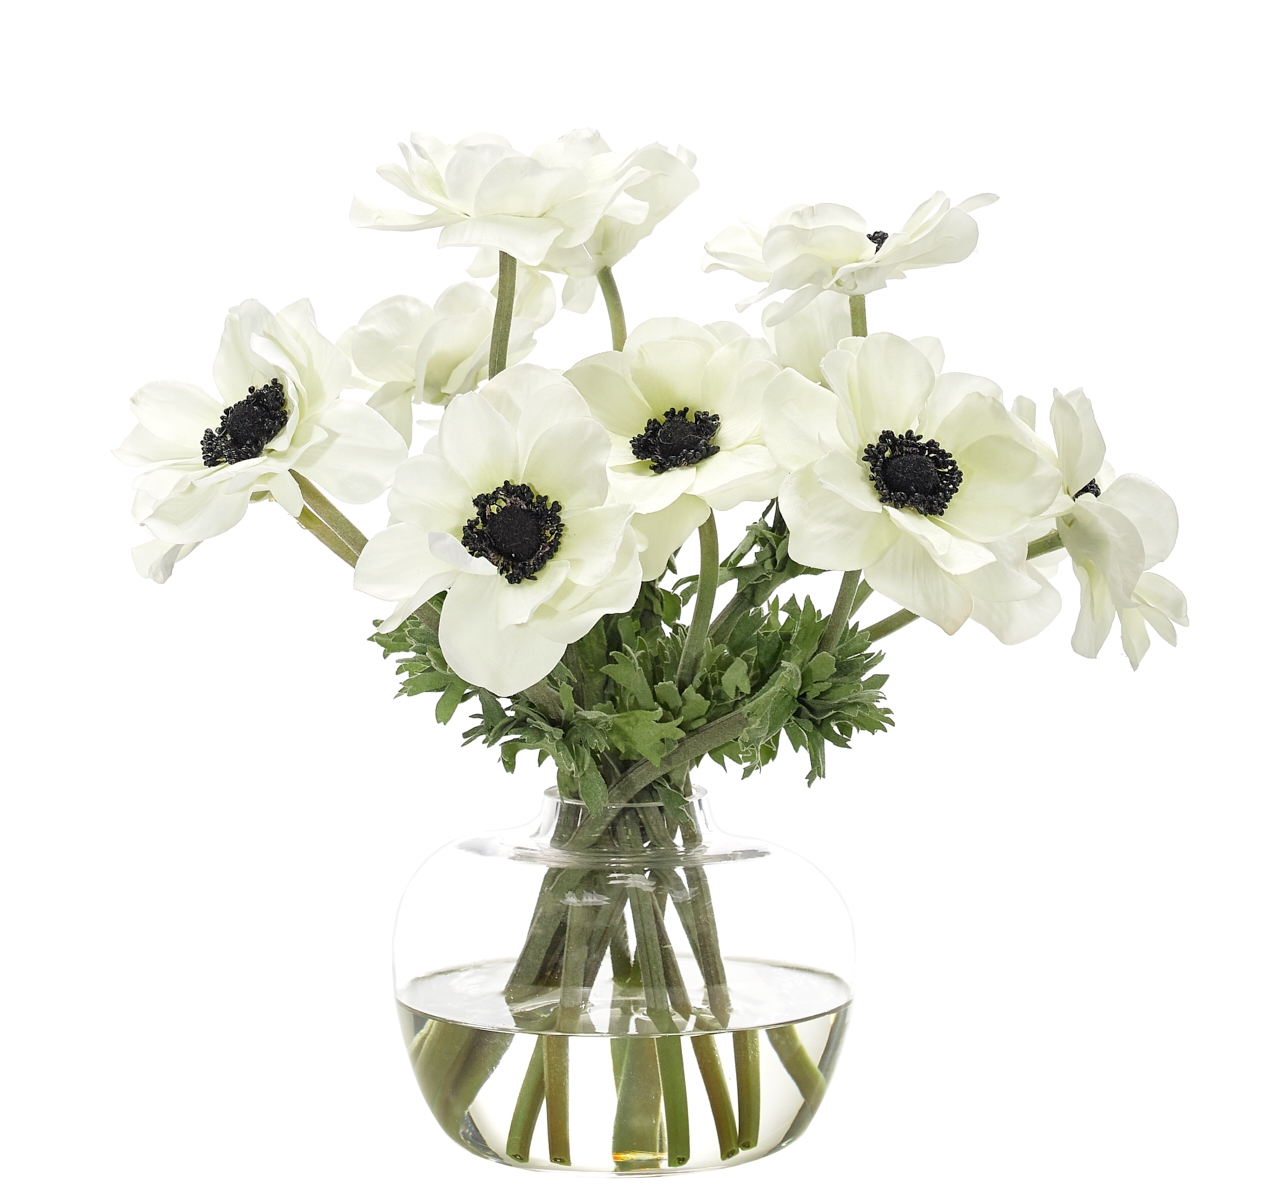 Anemone, White, Glass Ginger Jar, 16wx14dx13h